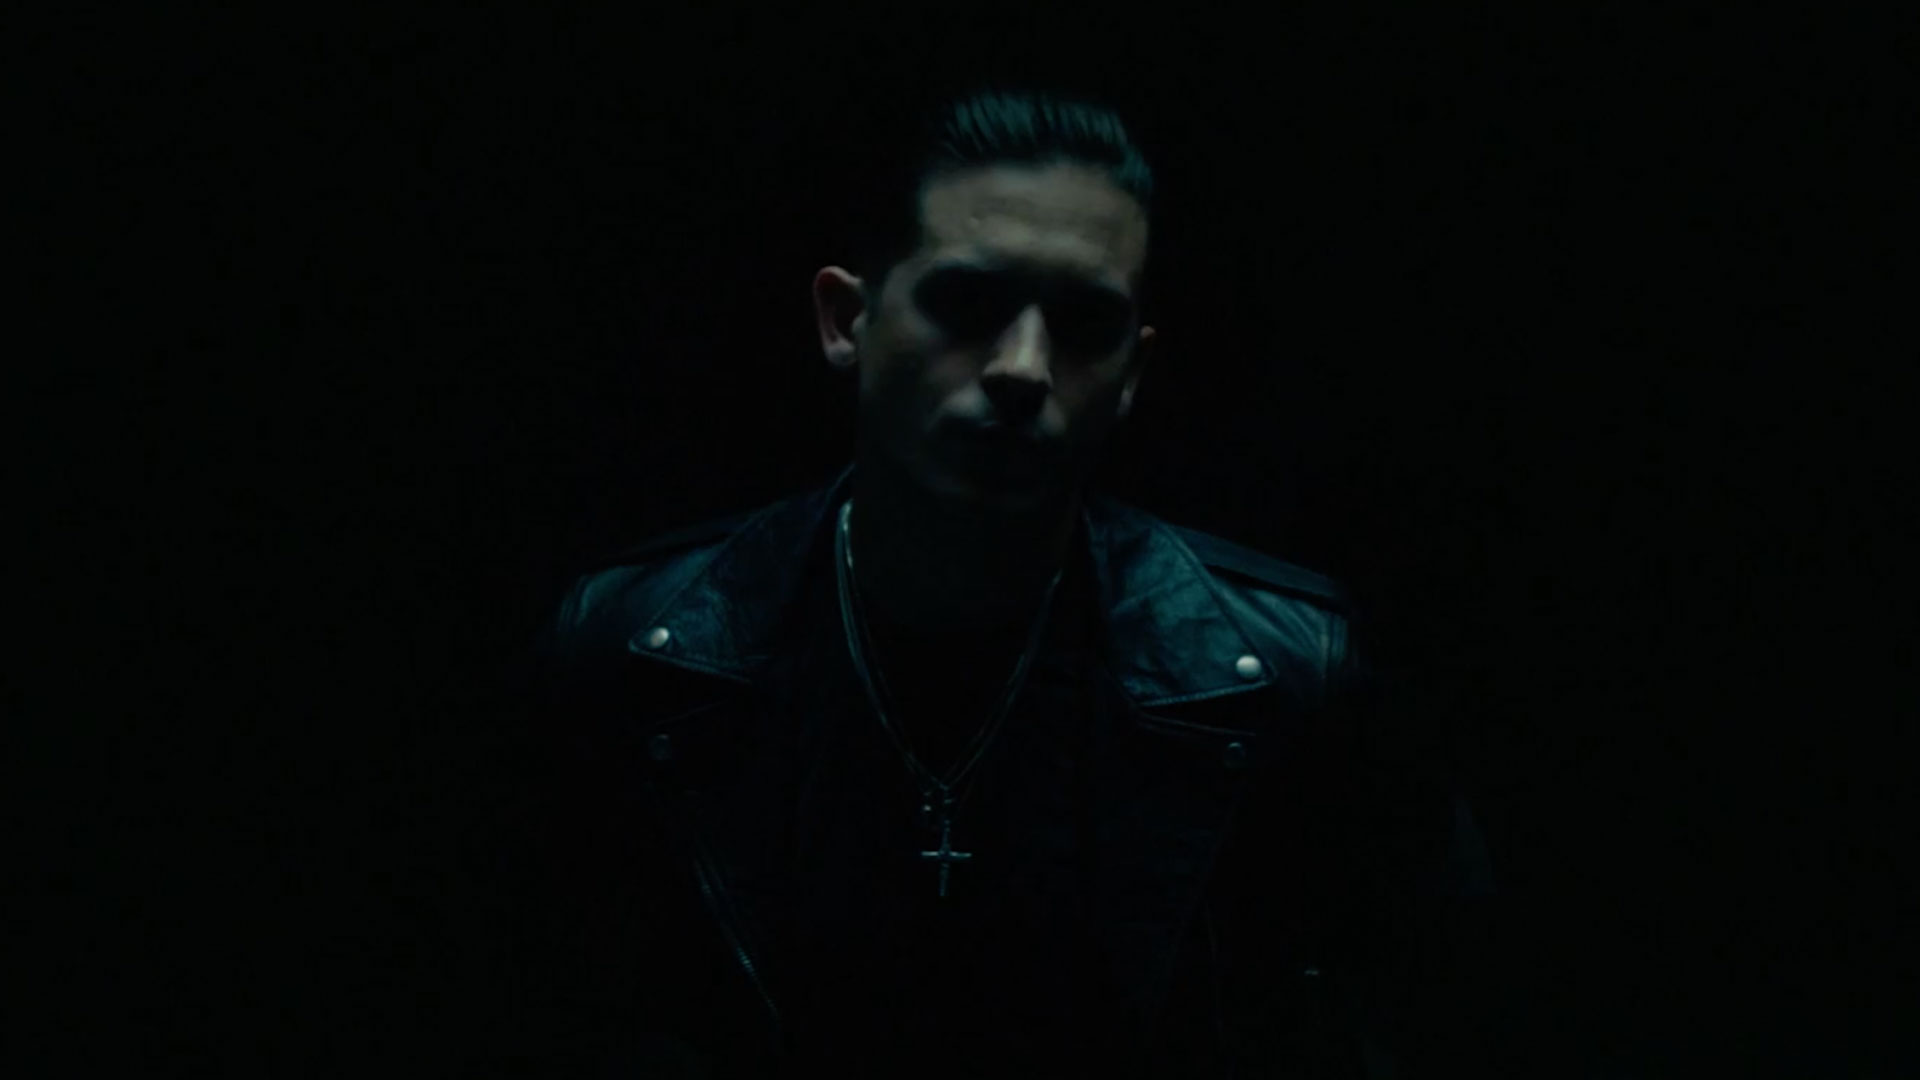 """G-EAZY: """"BEAUTIFUL AND DAMNED """" DIRECTOR BOBBY BRUDERLE"""